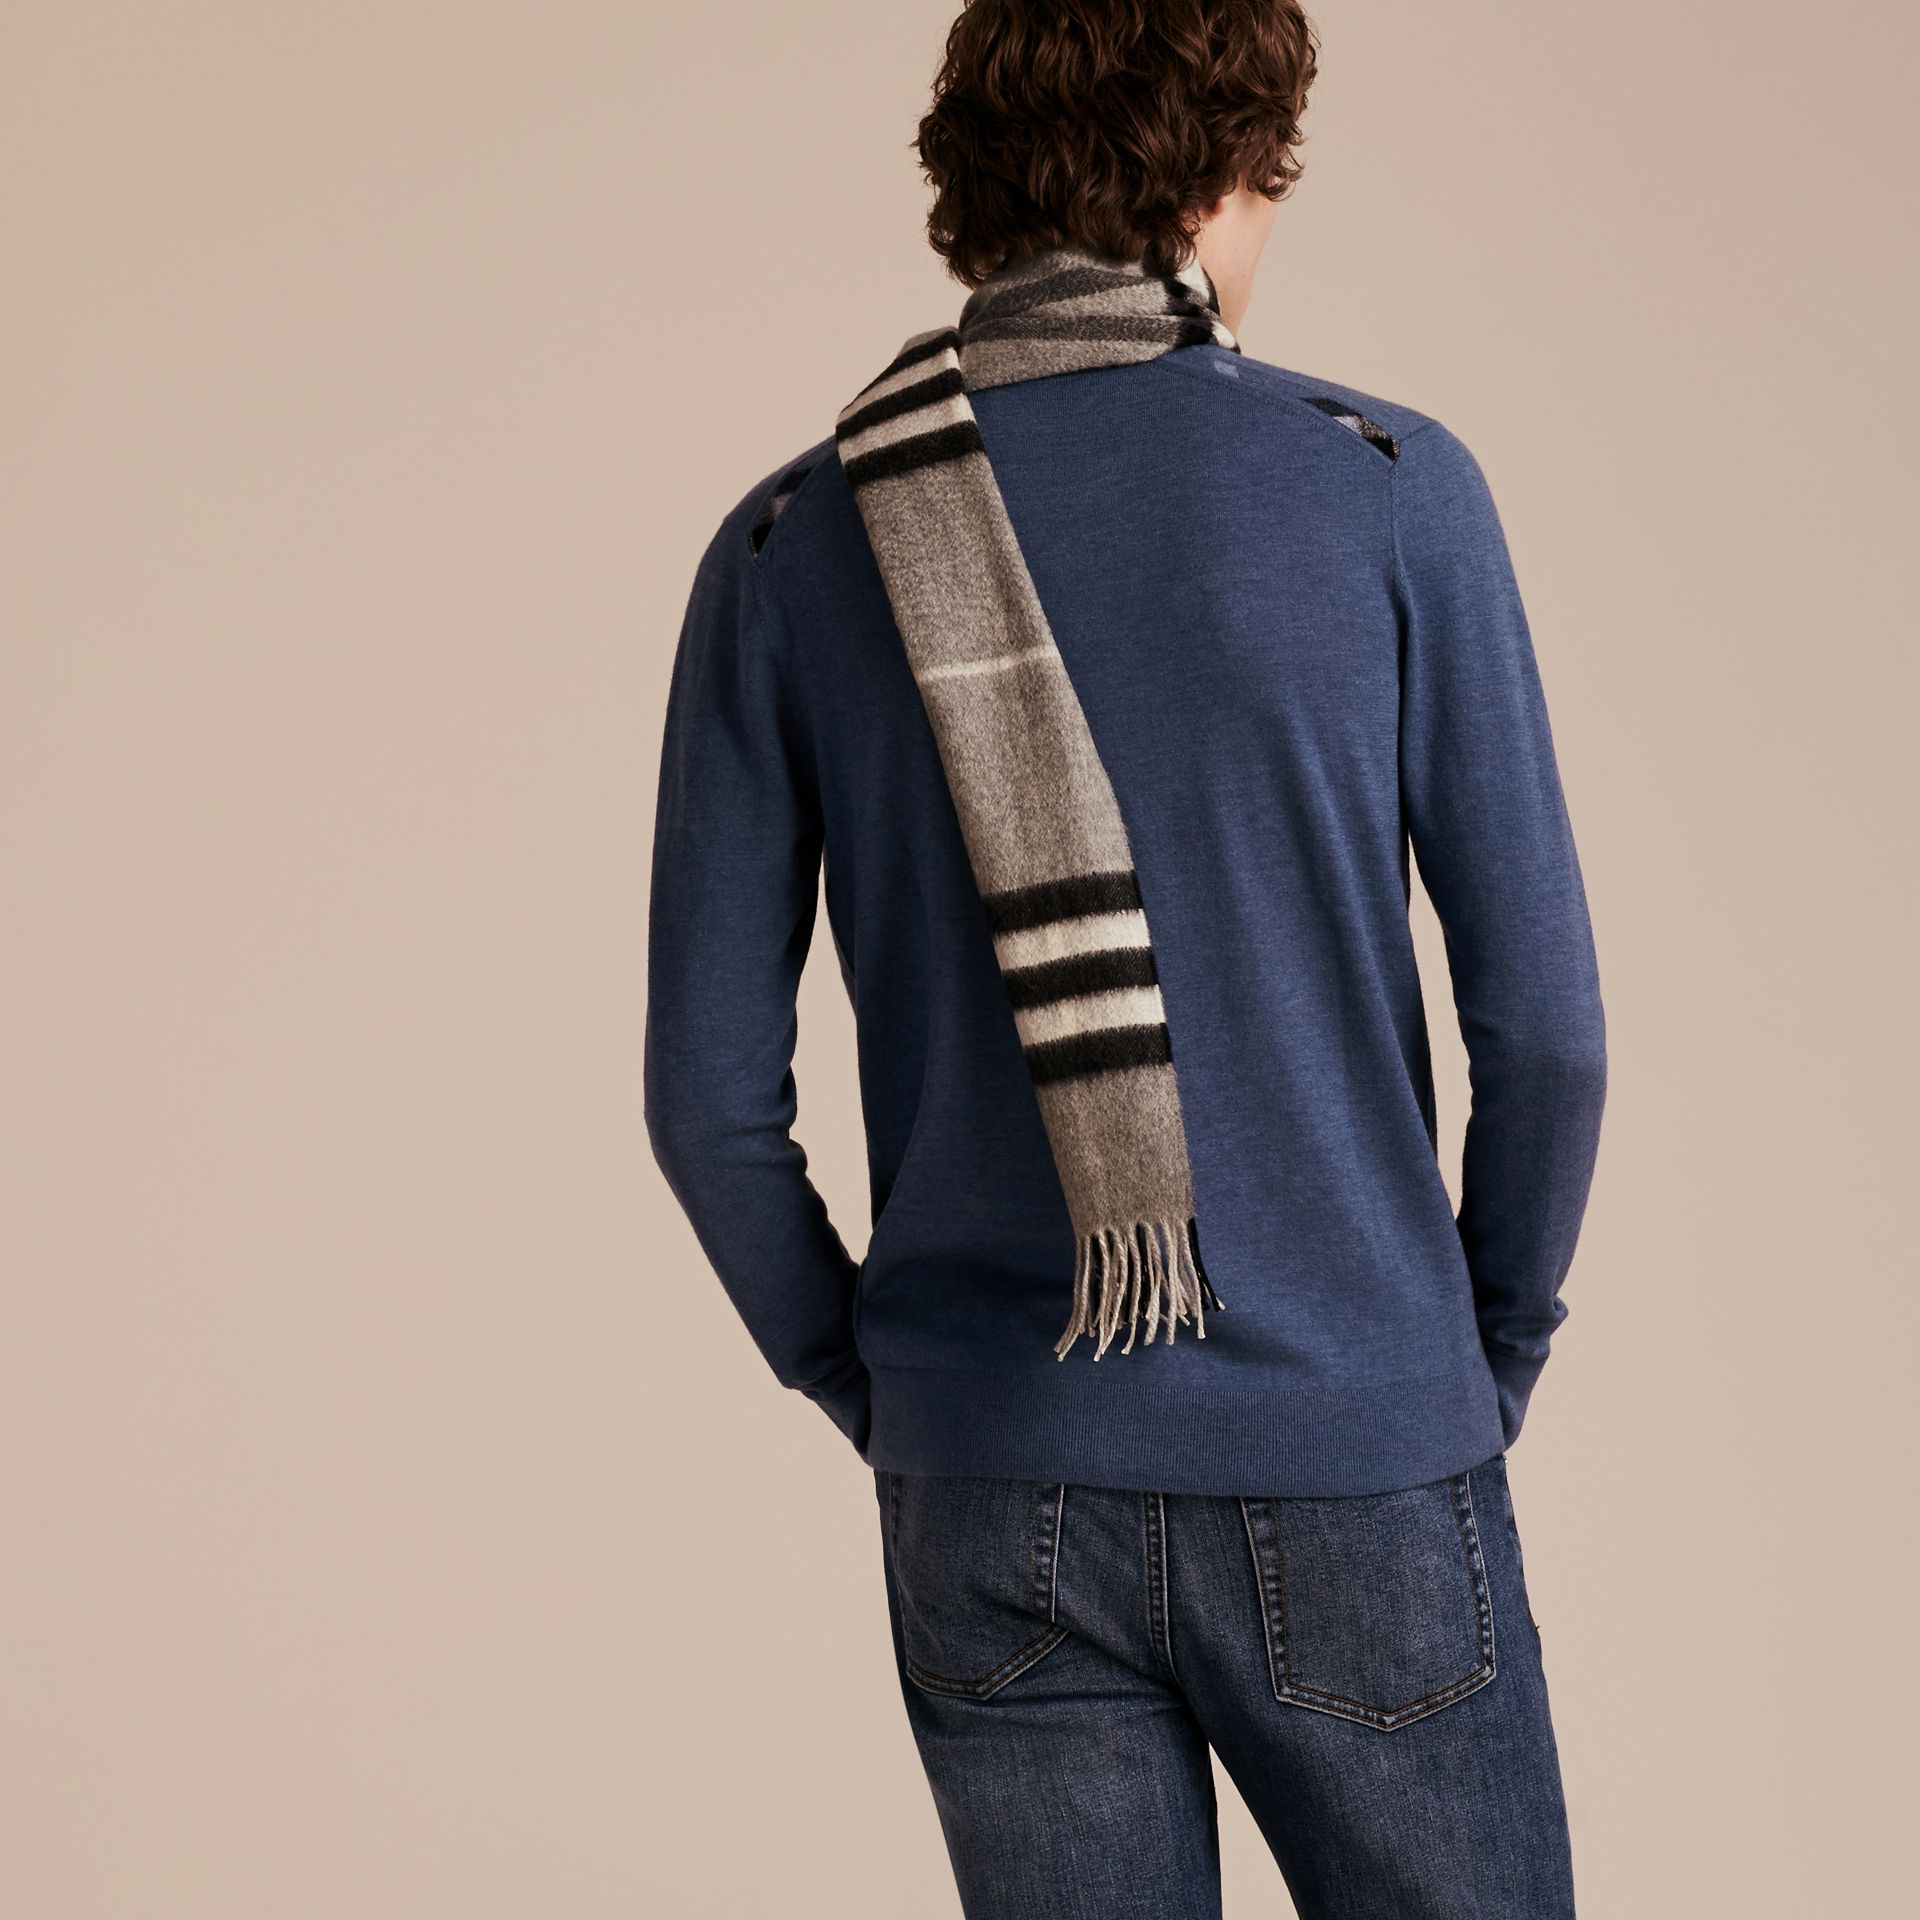 Lightweight Crew Neck Cashmere Sweater with Check Trim in Dusty Blue - Men | Burberry Canada - gallery image 3